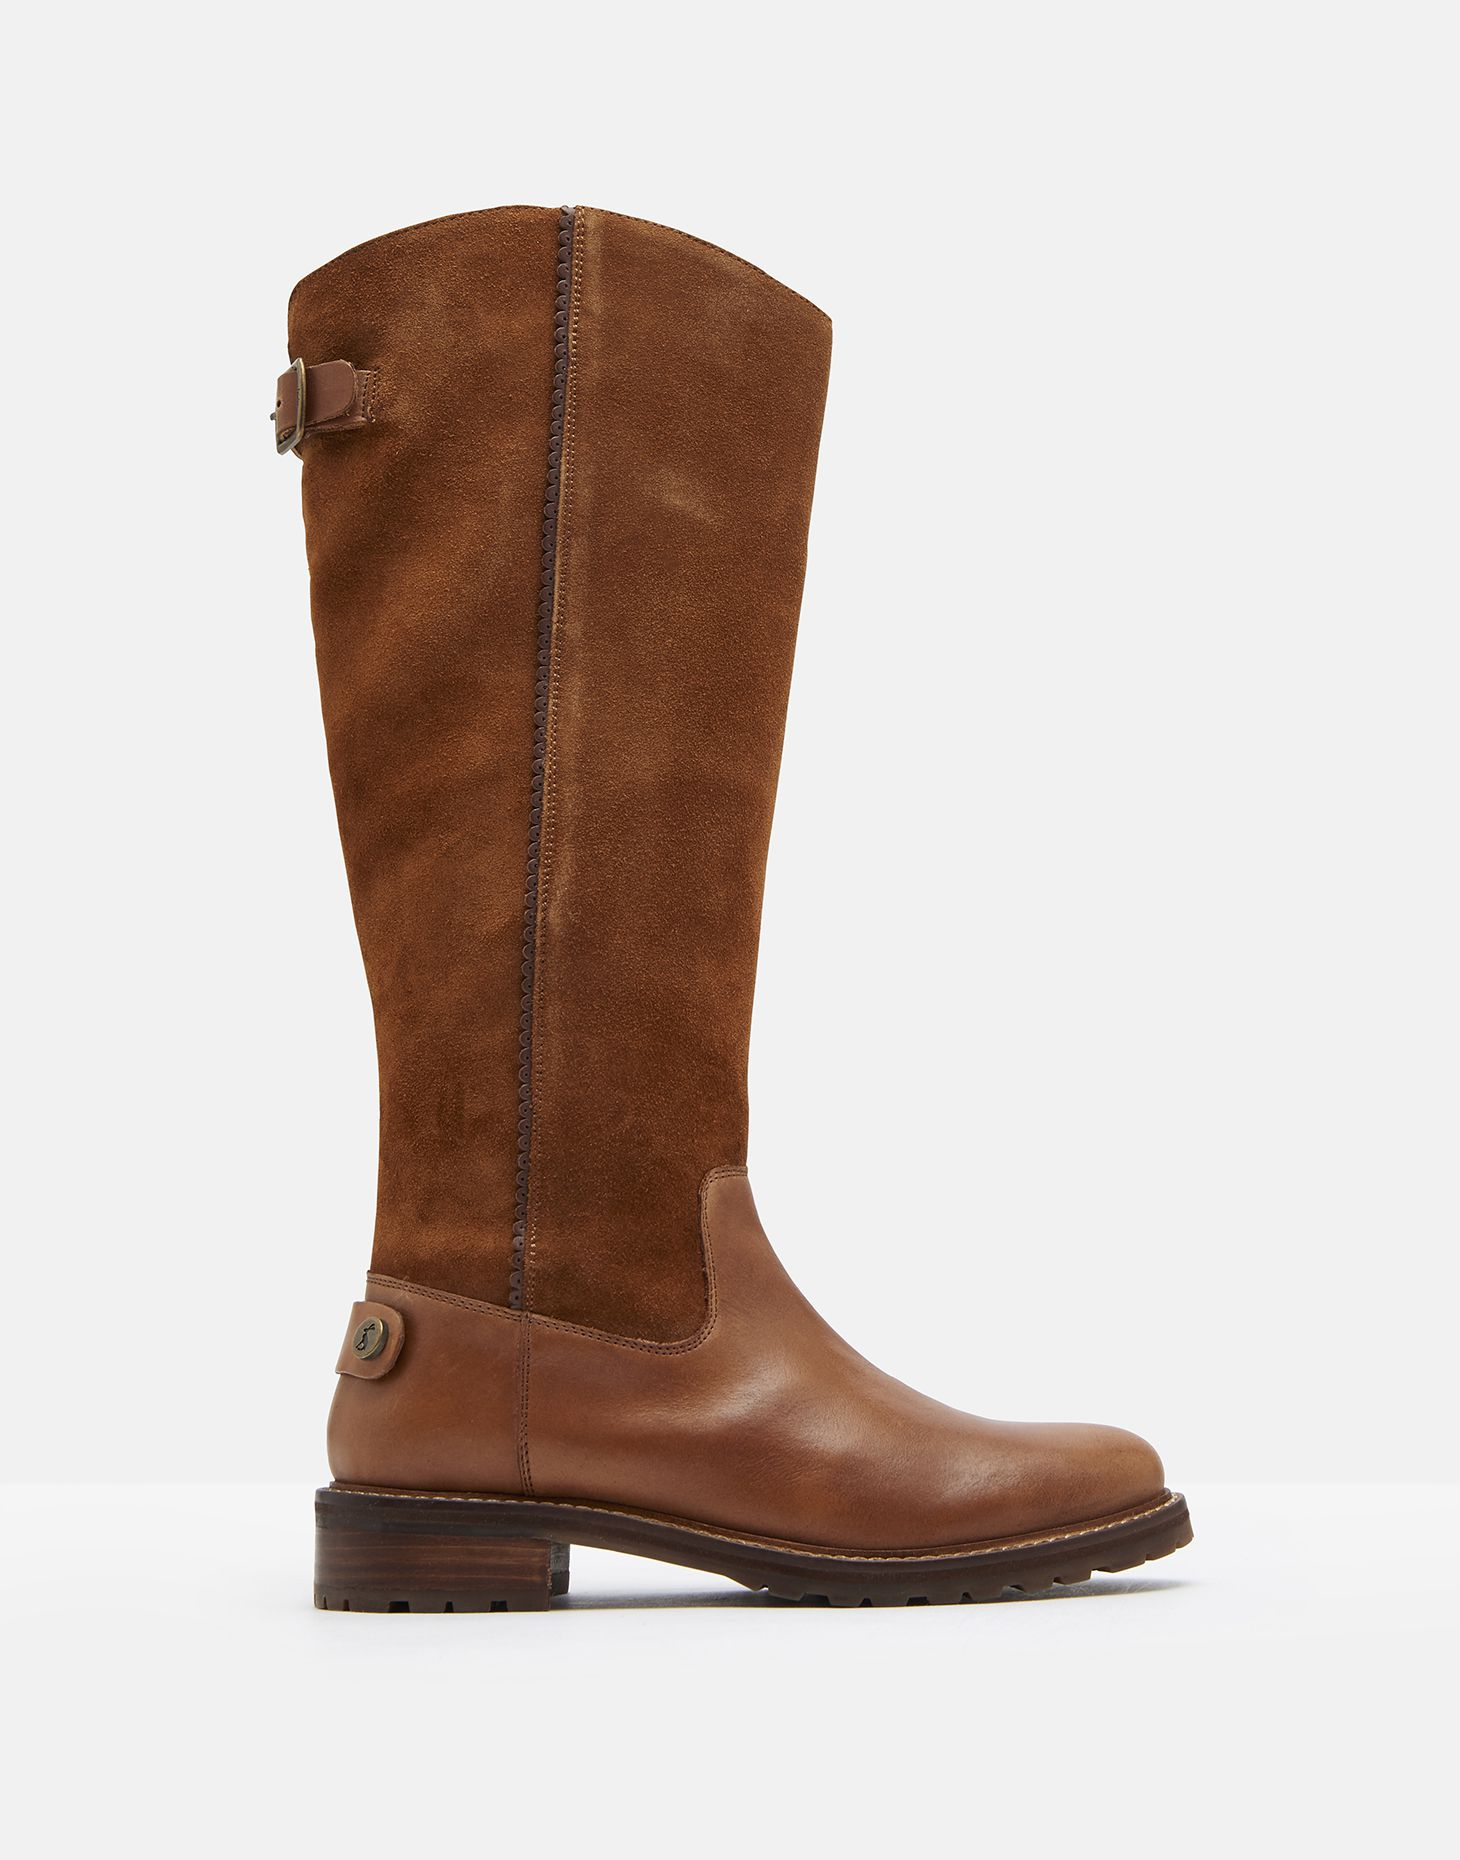 68b4393bd49 ... Knee High Boots Tan. Hover to zoom